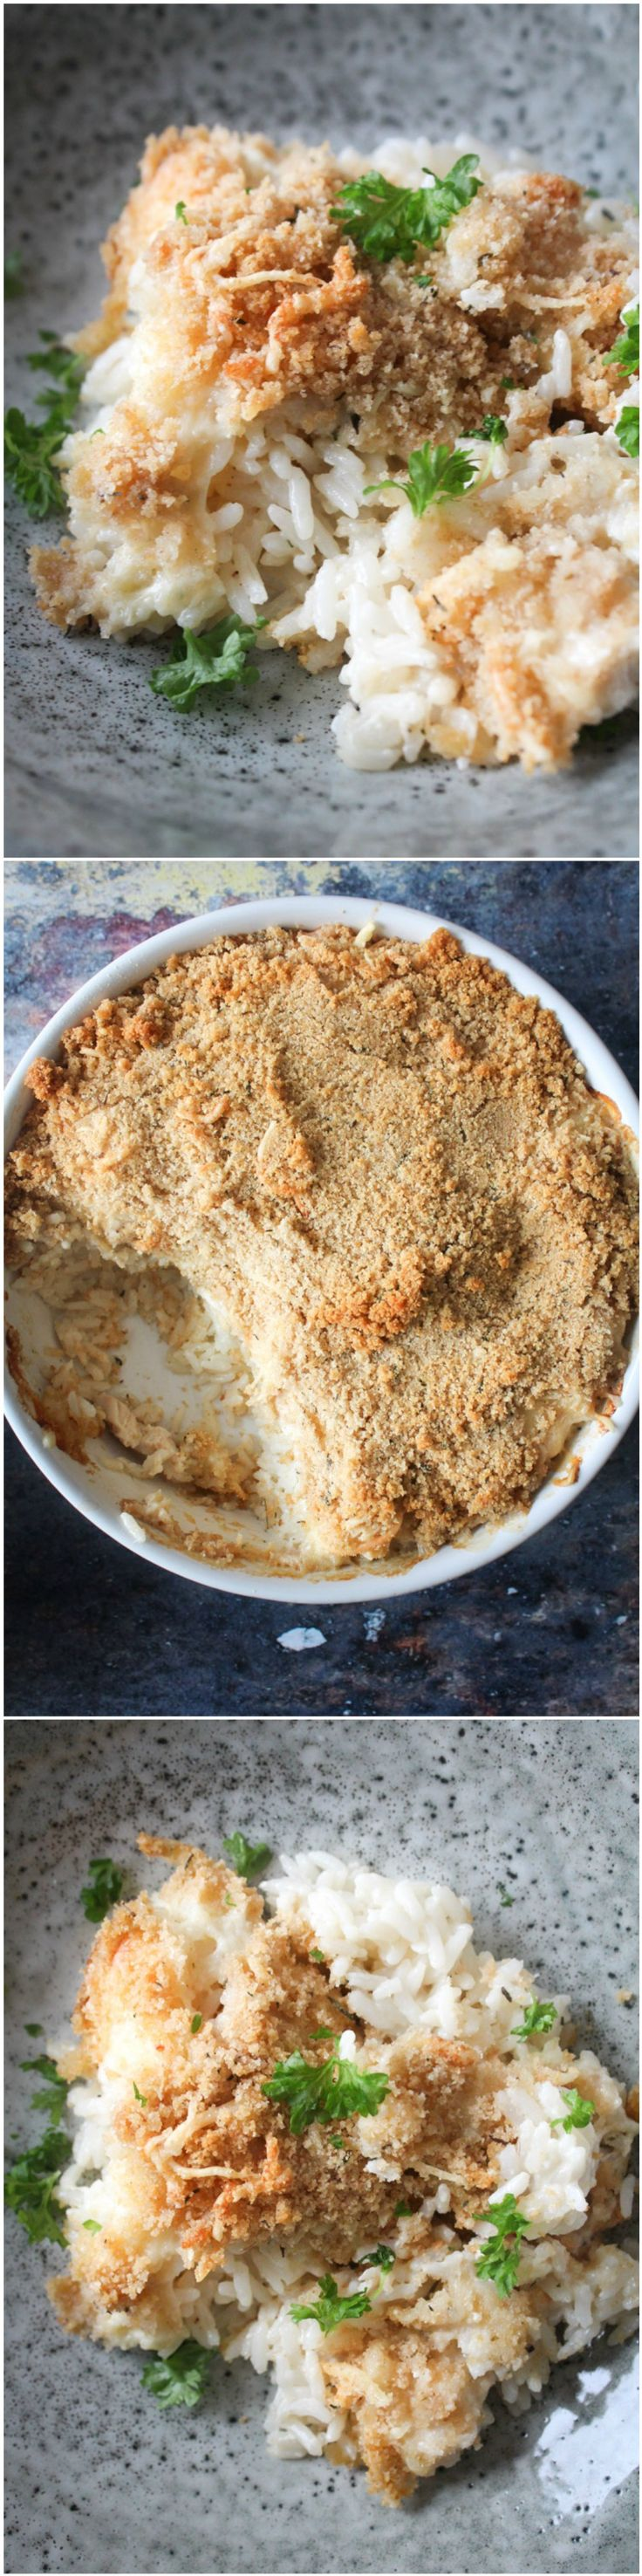 Rice bake- Rice casserole - chicken and rice - creamy rice - easy dinner